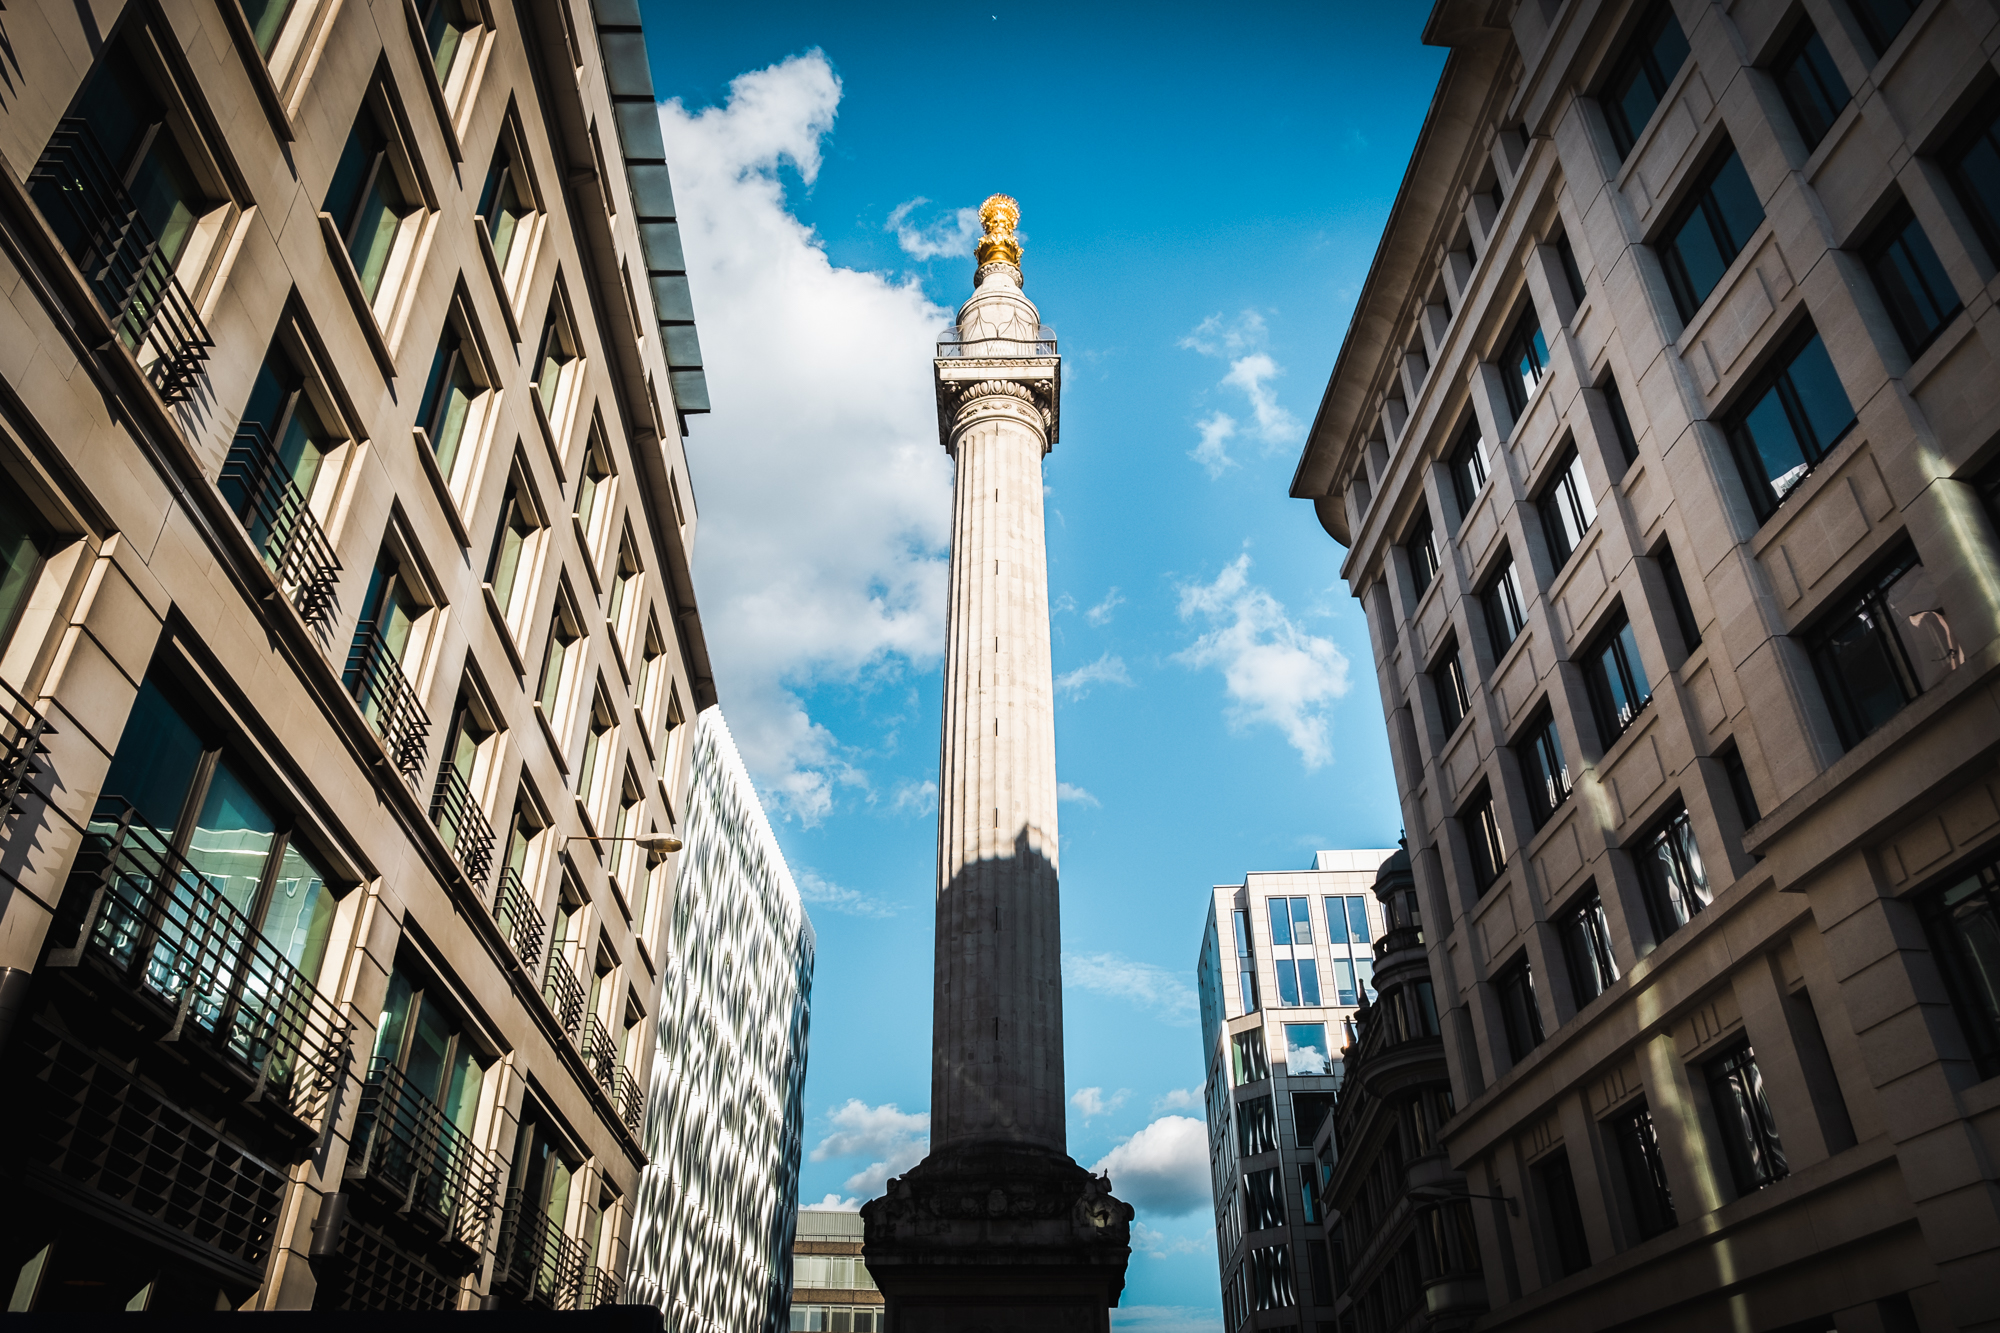 A photo of The Monument in London Chrome by Trevor Sherwin